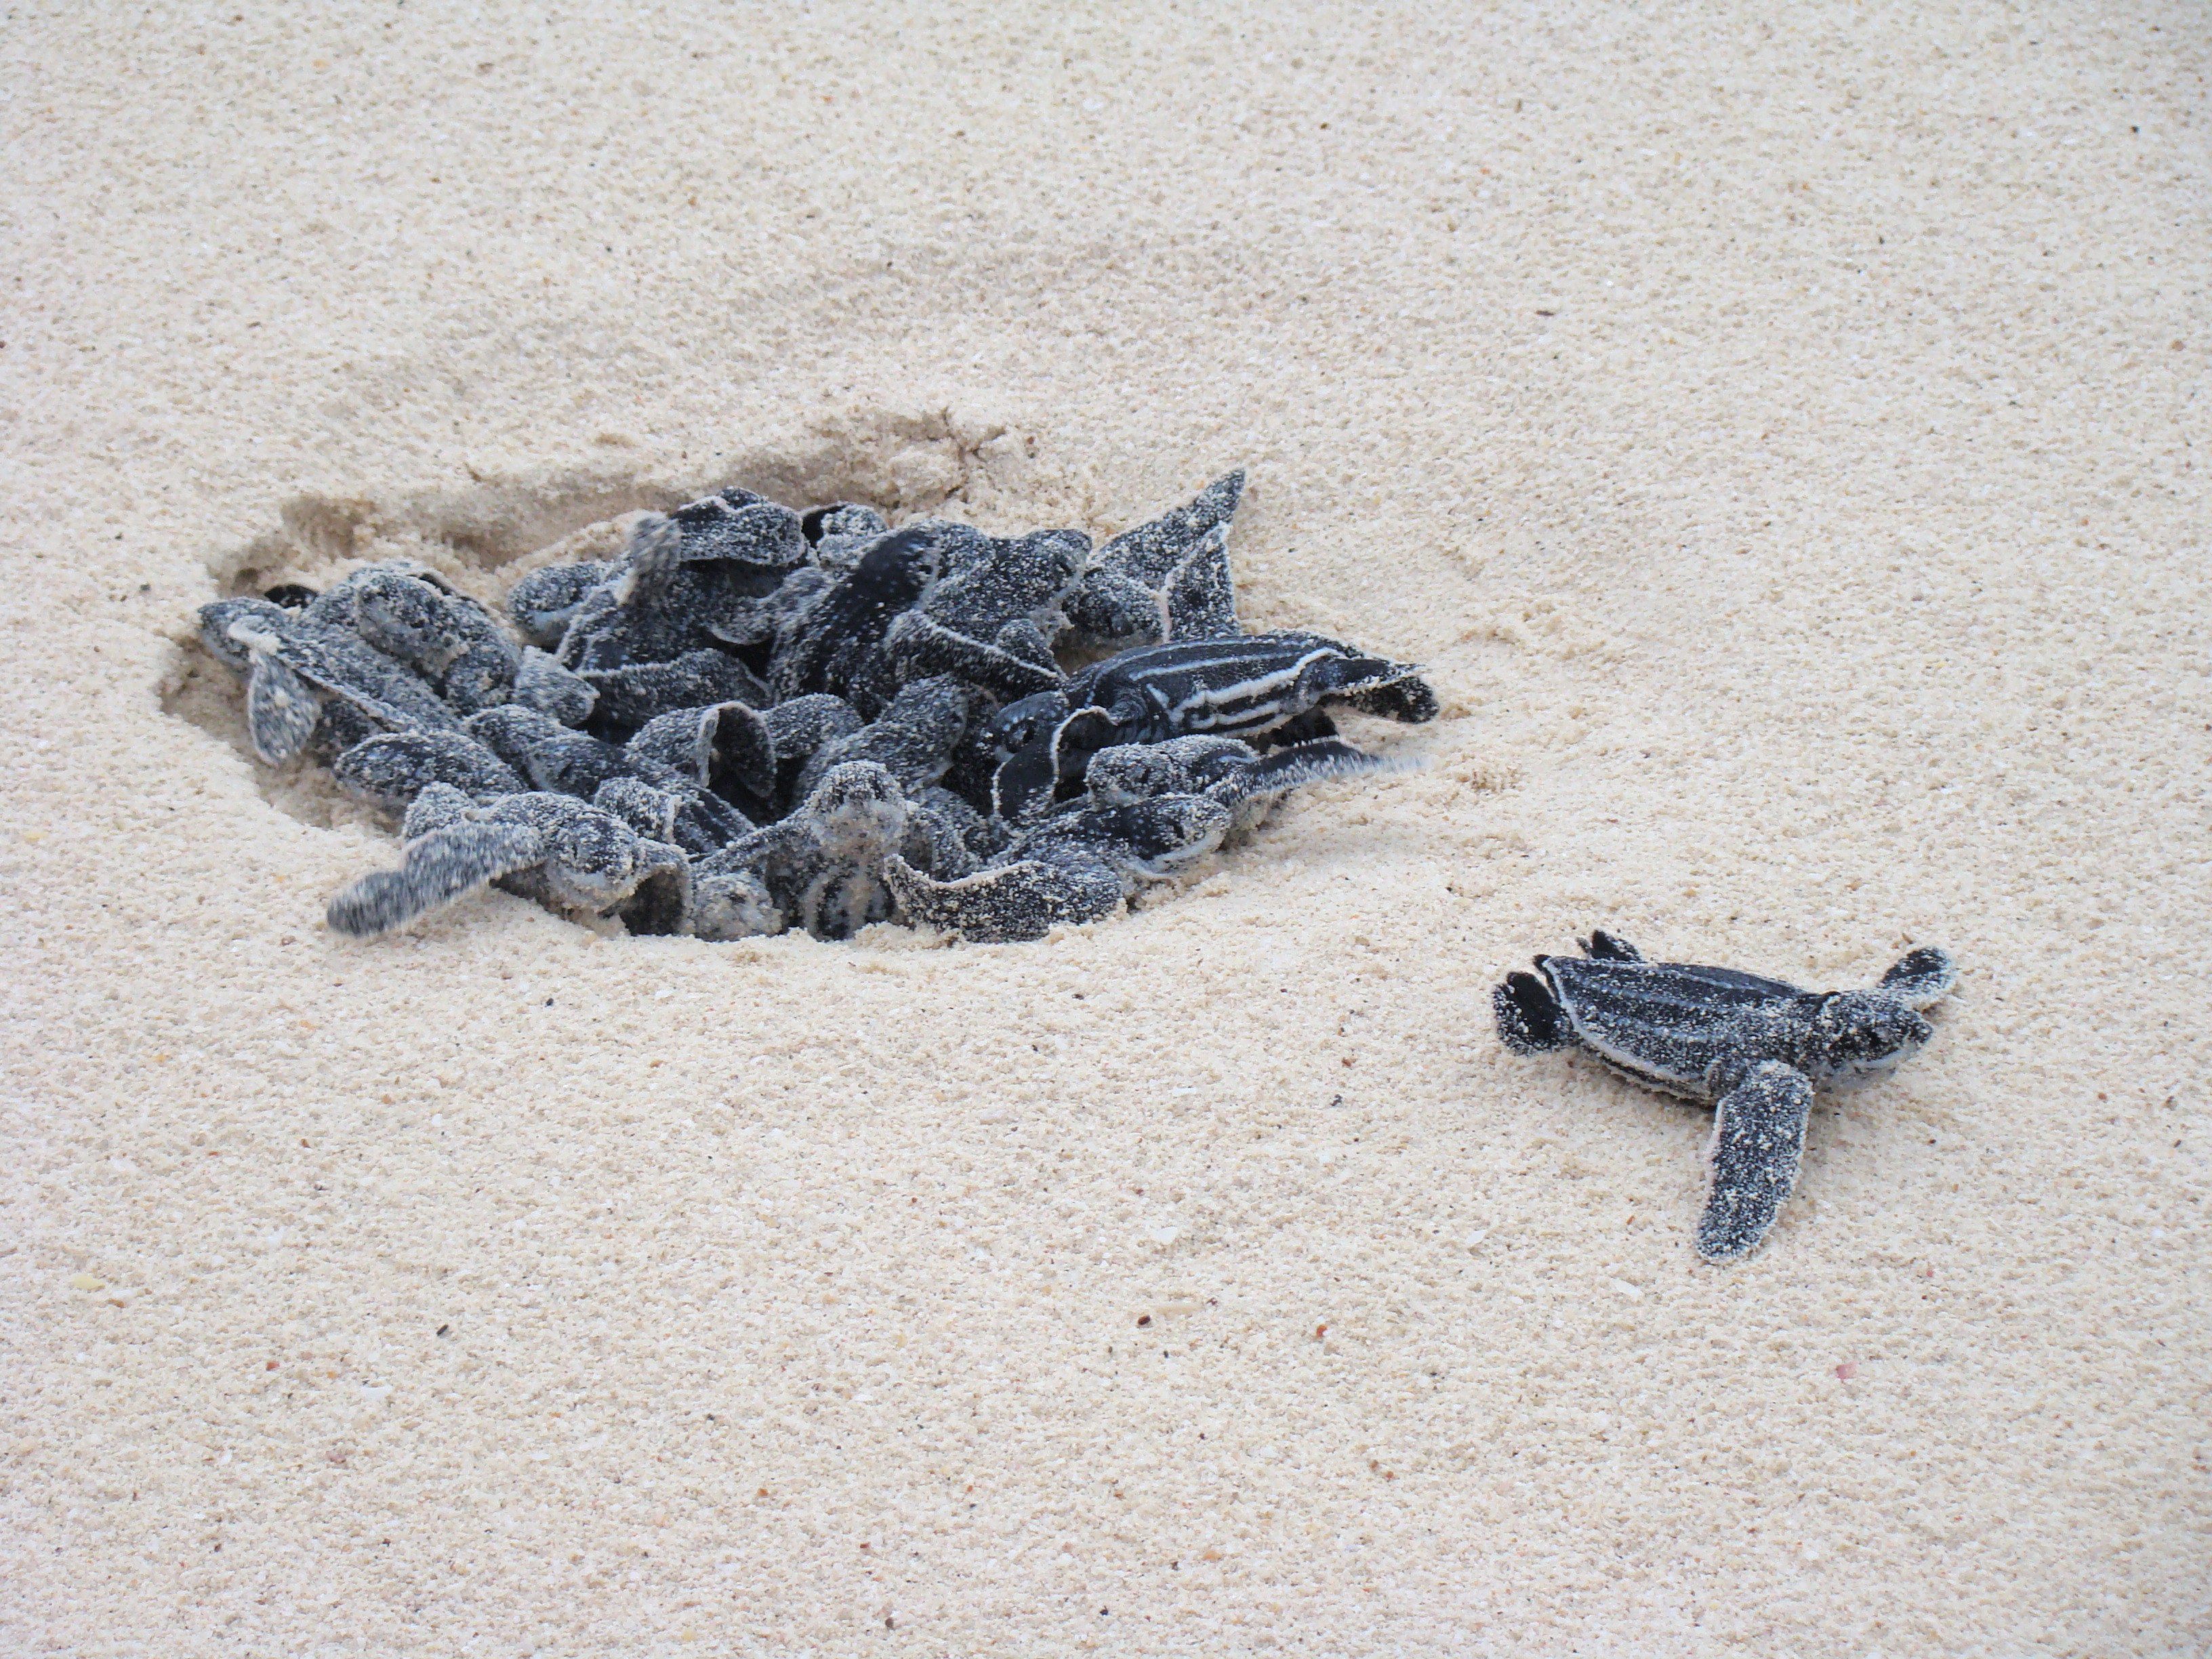 Turtle Eggs Hatching